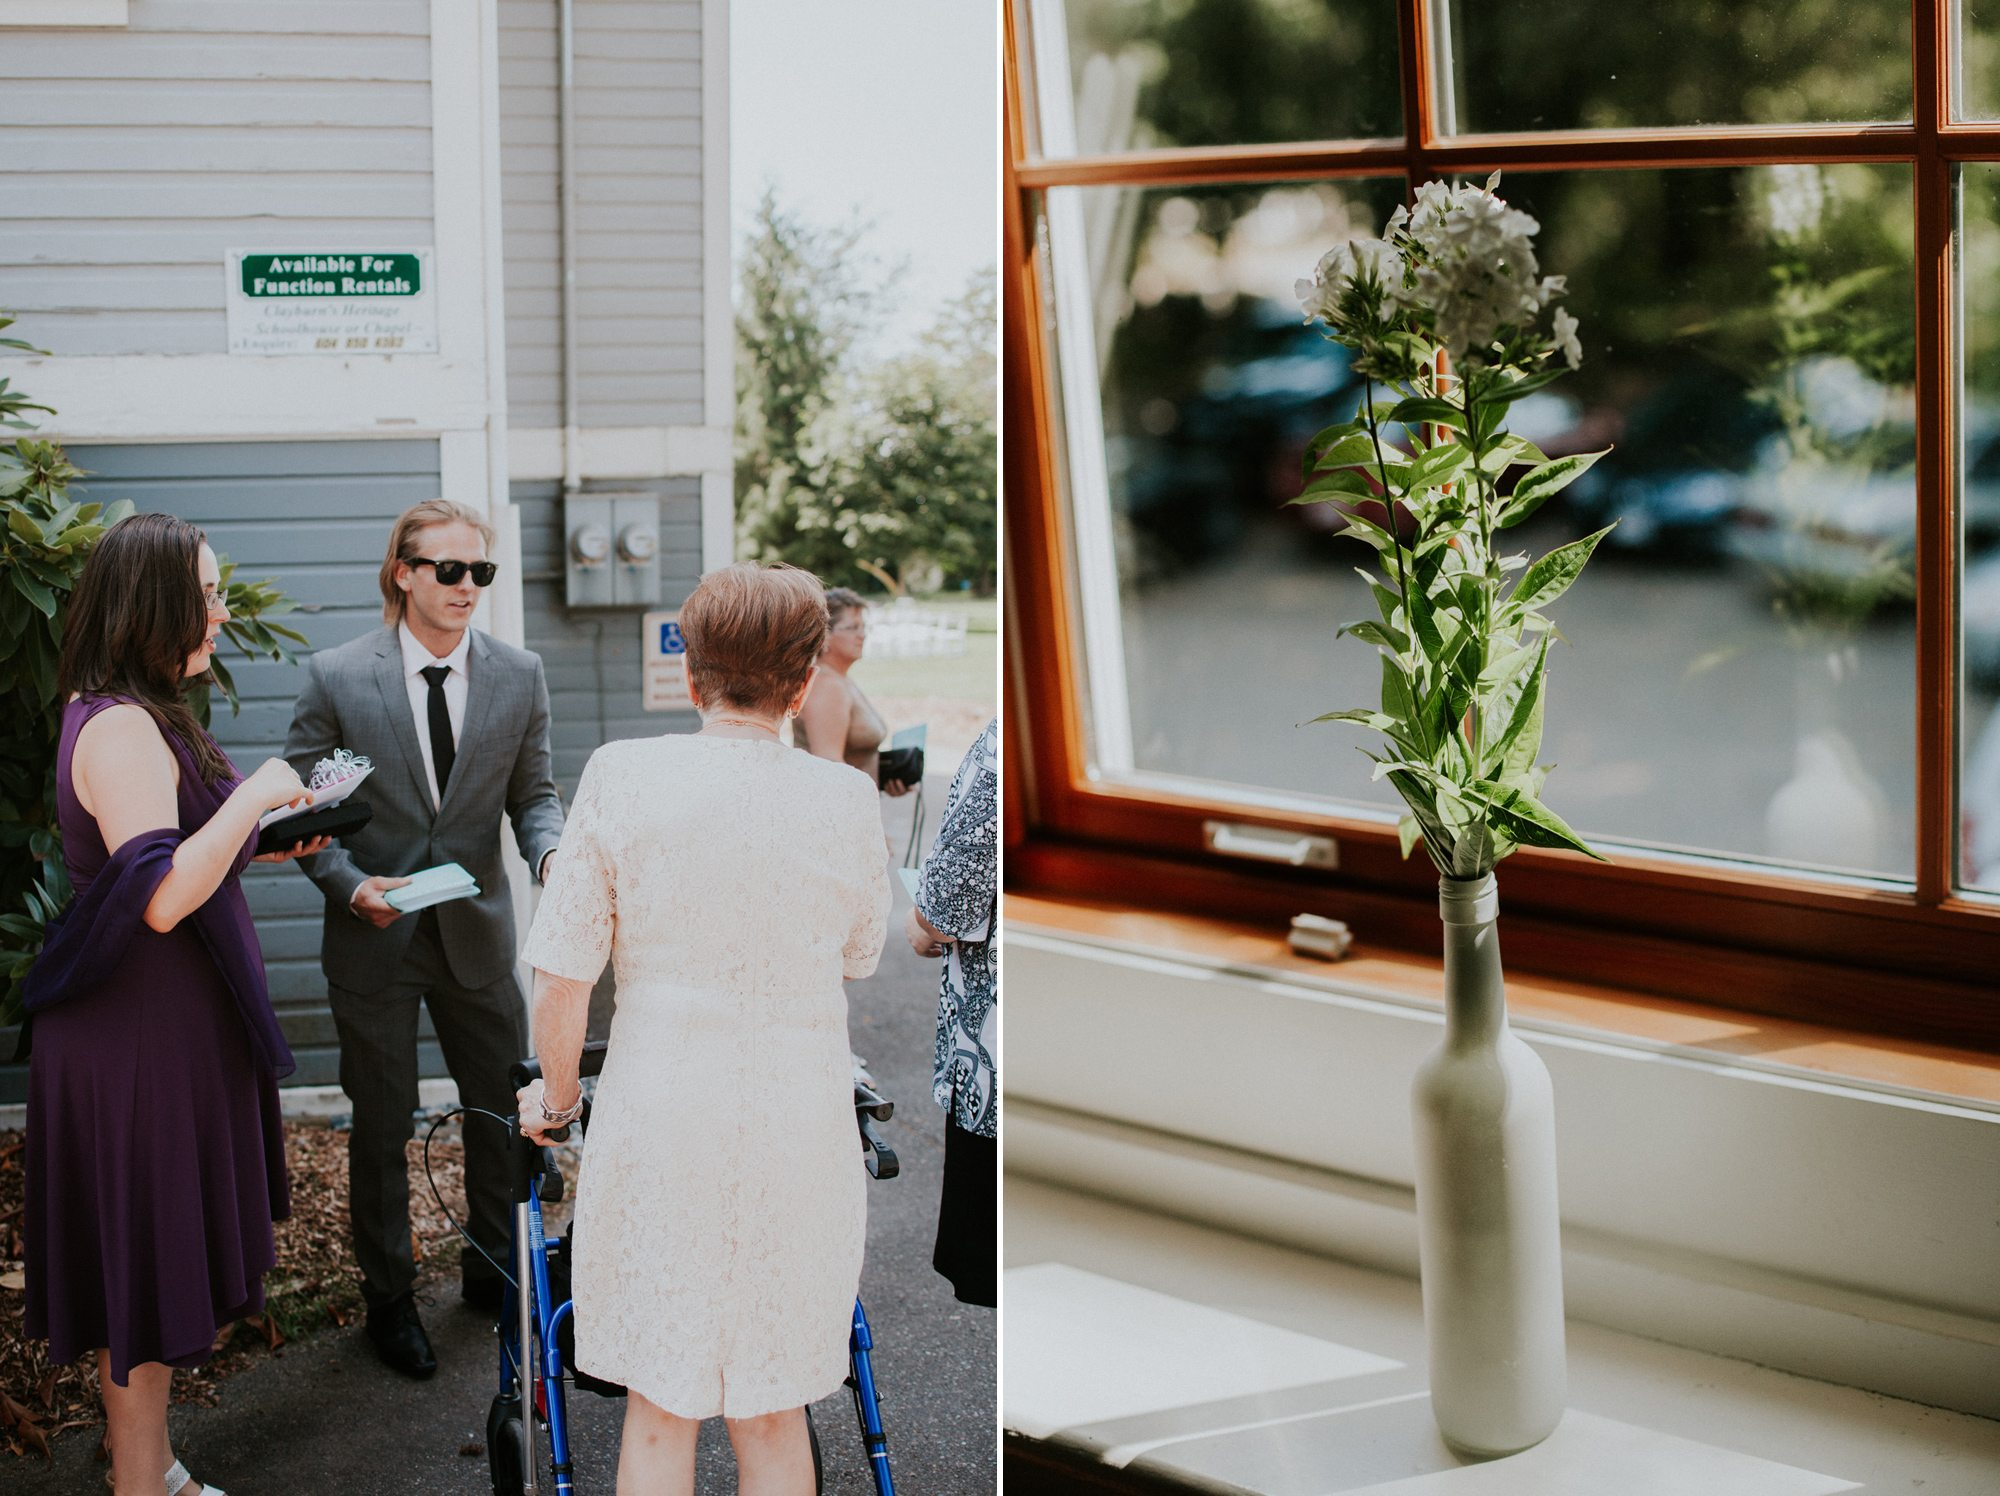 816-abbotsford-wedding-photographer